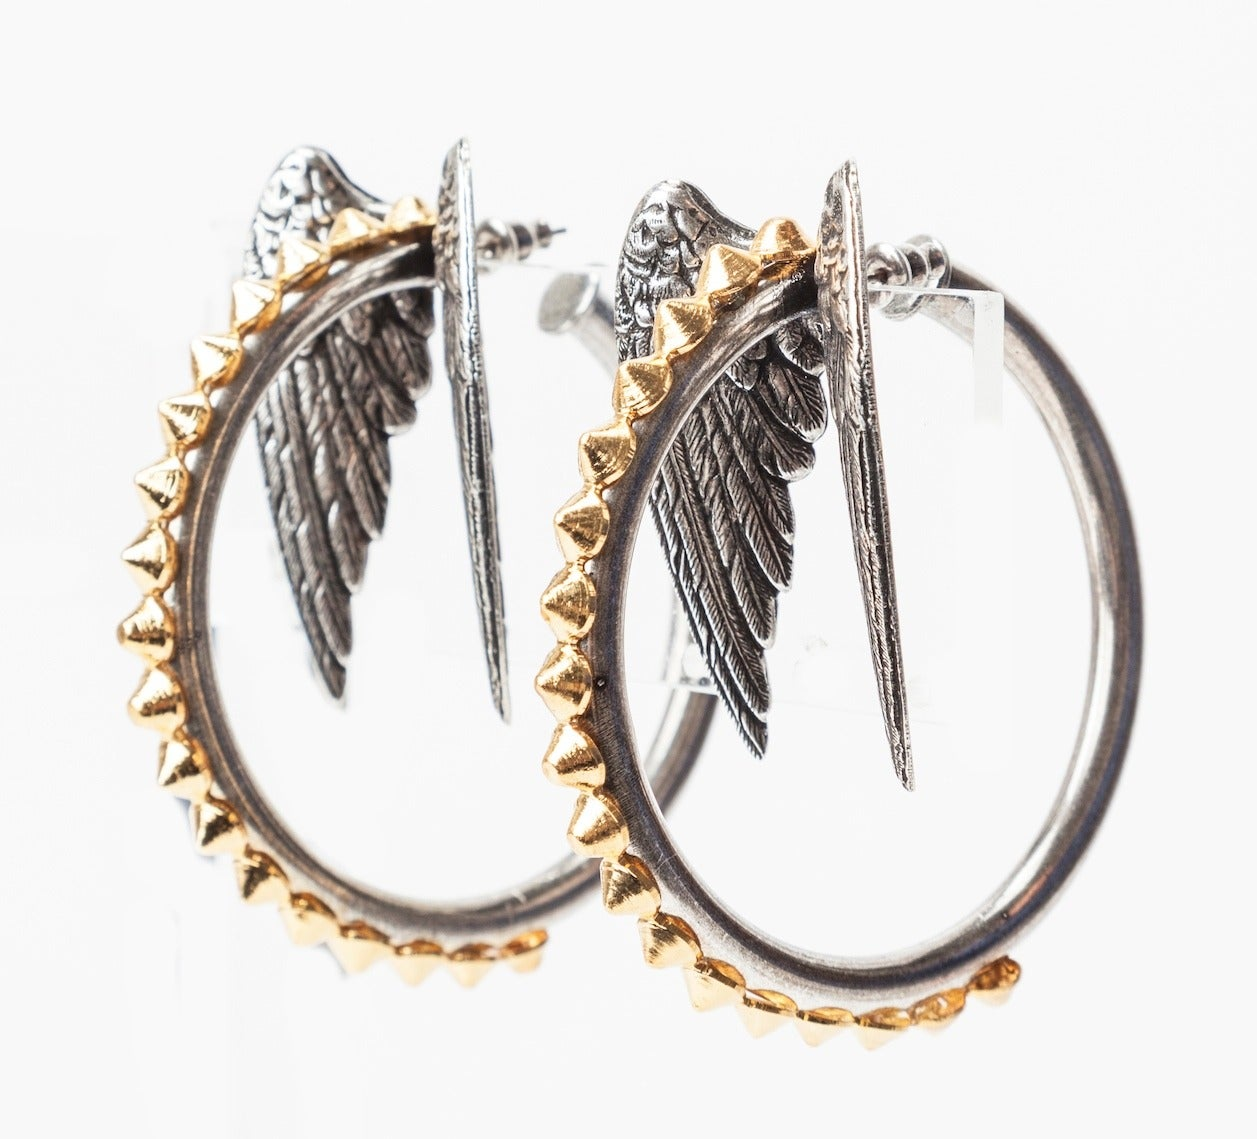 Winged Hoops, MWLC In As New Condition For Sale In Riverdale, NY